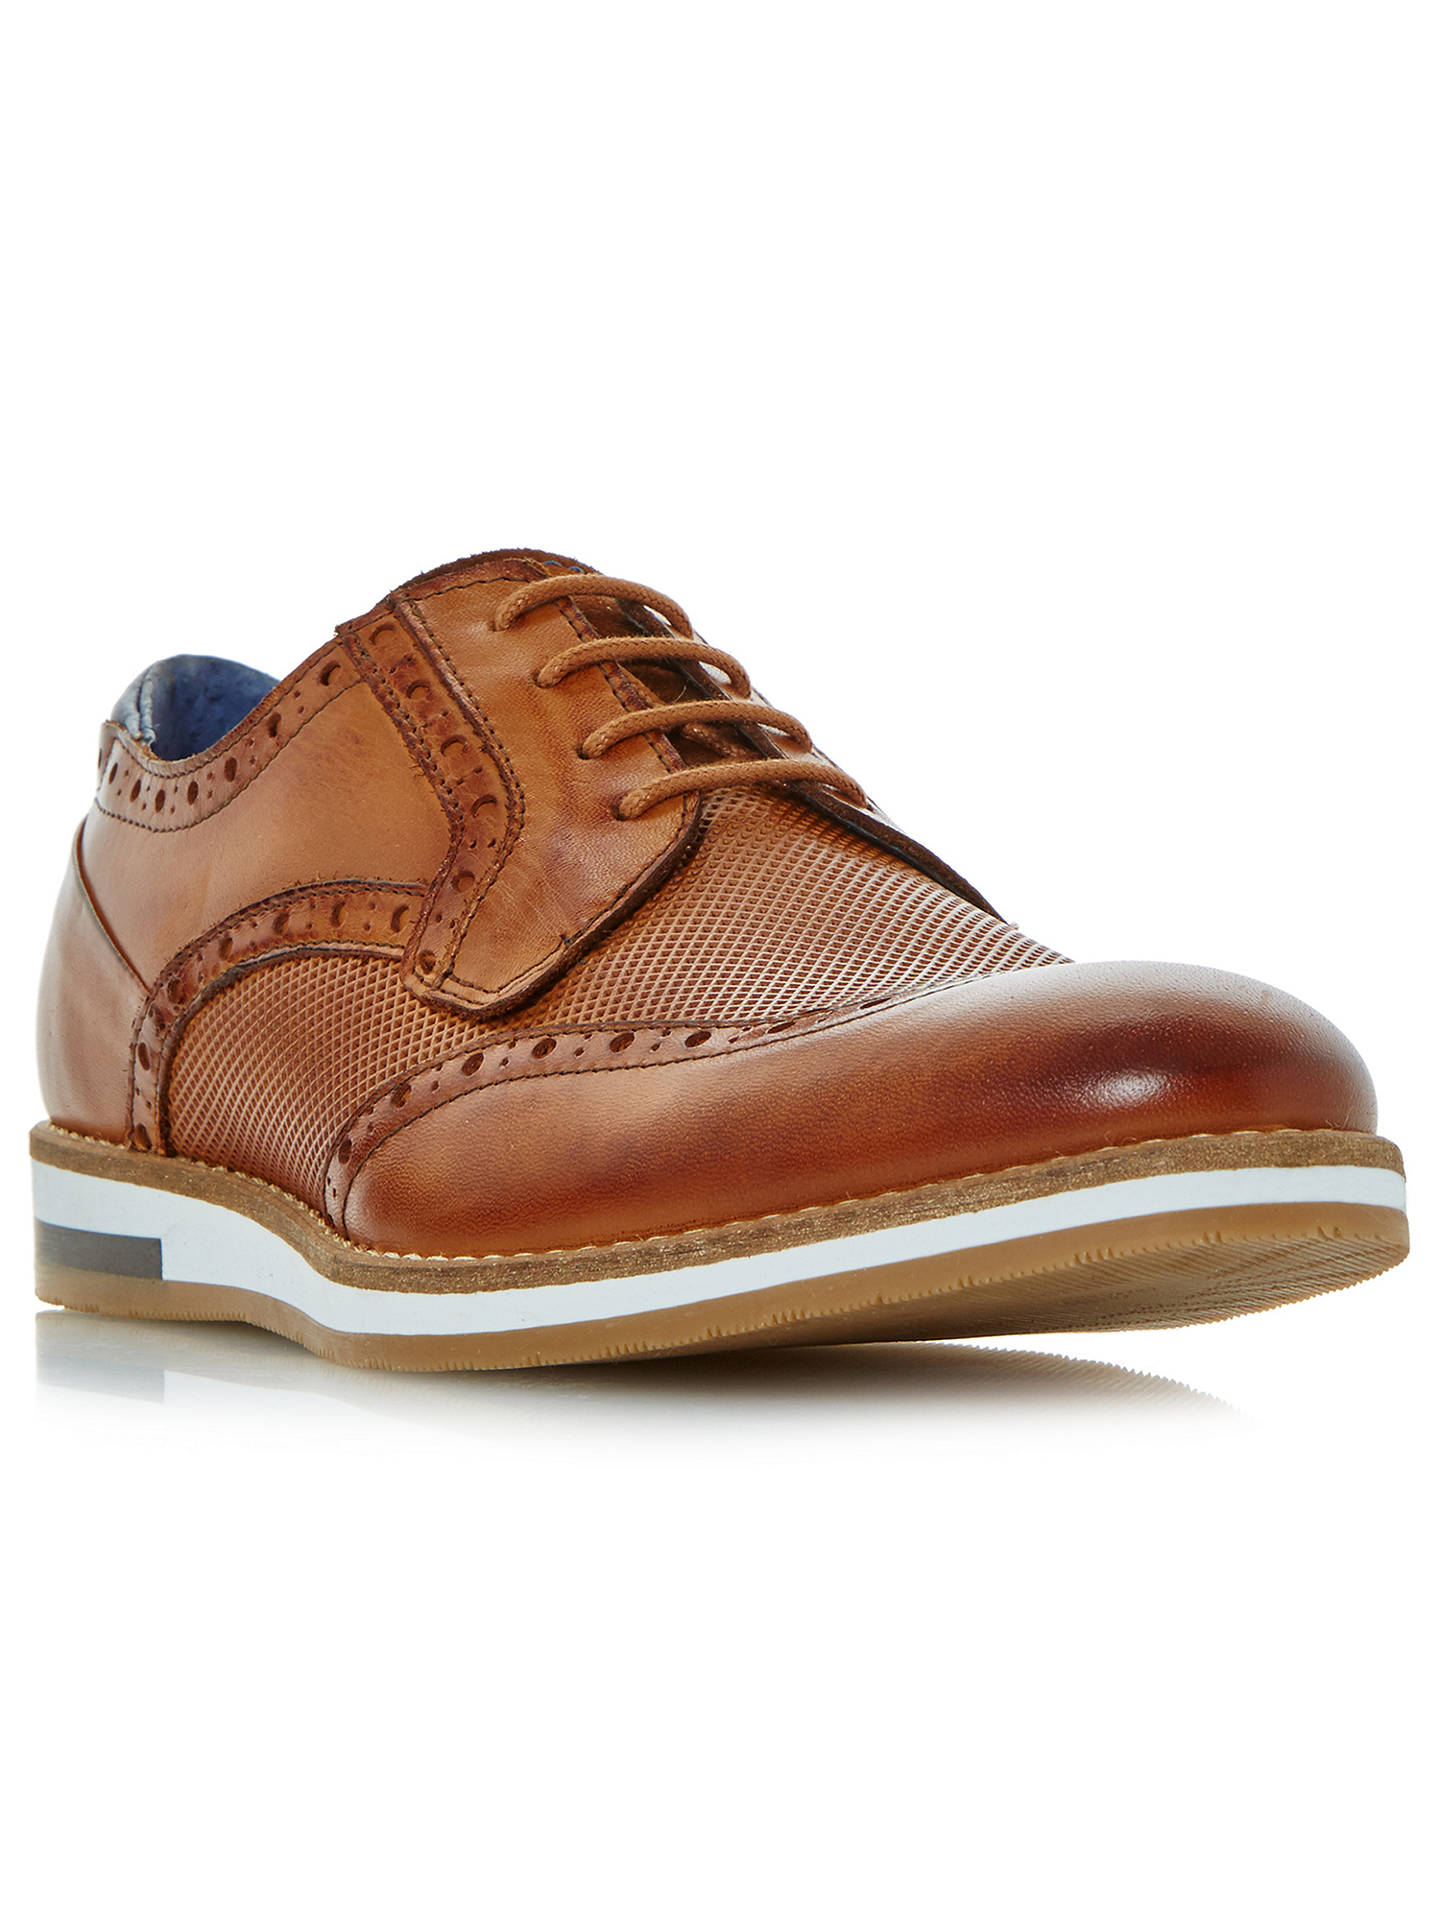 Buy Bertie Baker Hill Gibson Leather Wingtip Shoes, Tan Leather, 7 Online at johnlewis.com